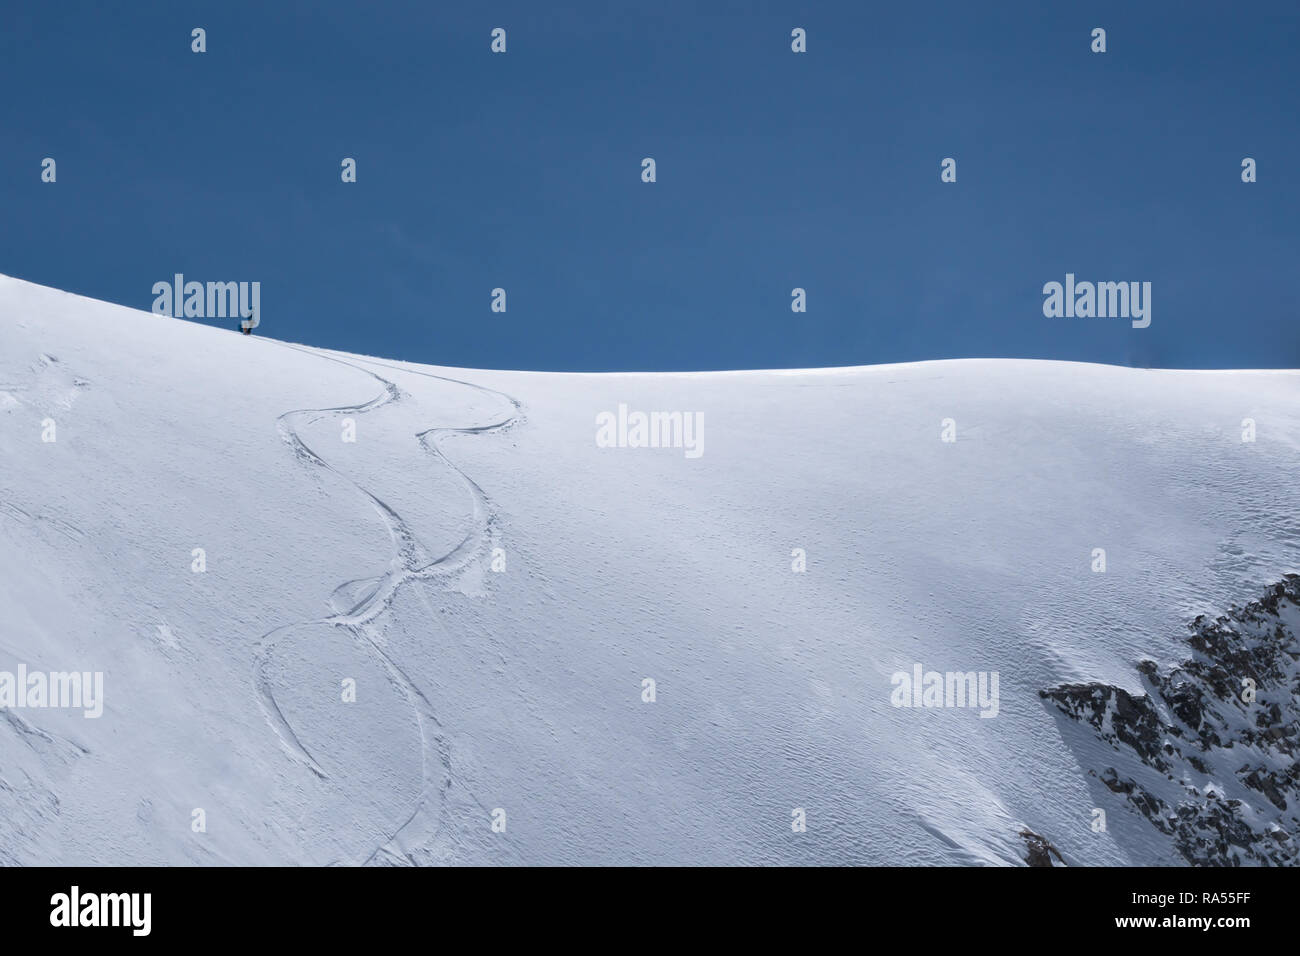 A single freeride skier on a snowy ridge is waiting to drop into  into the Col d'Argentiere, France approach and make his own tracks - Stock Image